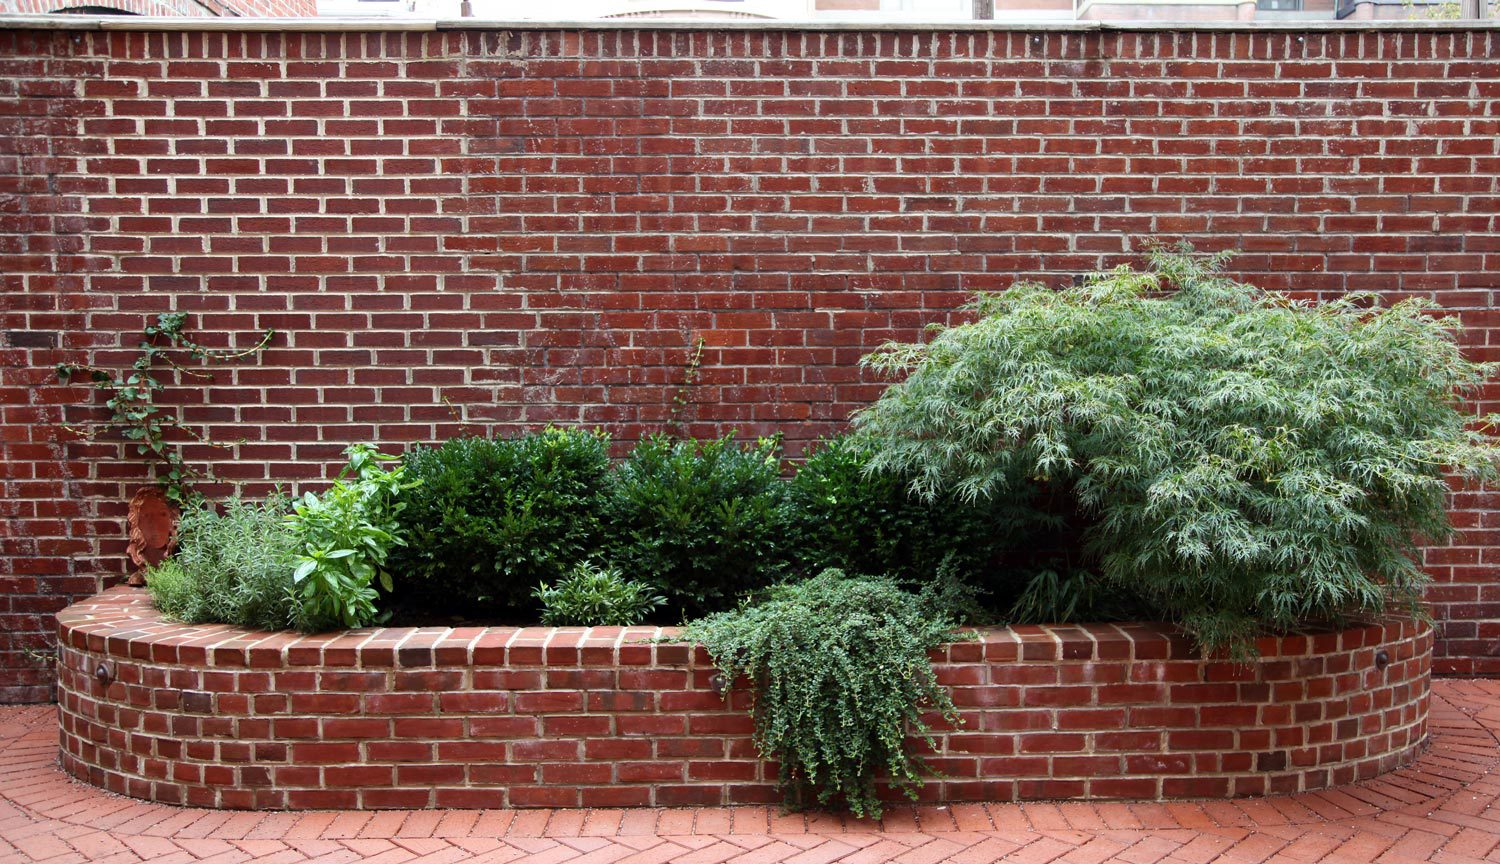 Project Location:  Washington, DC (Logan Circle)  Completion:  Winter 2010  General Contractor:  Redux Garden & Home  Primary Material Palette:  permeable clay pavers, black granite (fountain), antique granite (planters), ipe, river rock, stainless steel, aluminum sculptures, western red cedar trellis  Photos By:  Moody Landscape Architecture